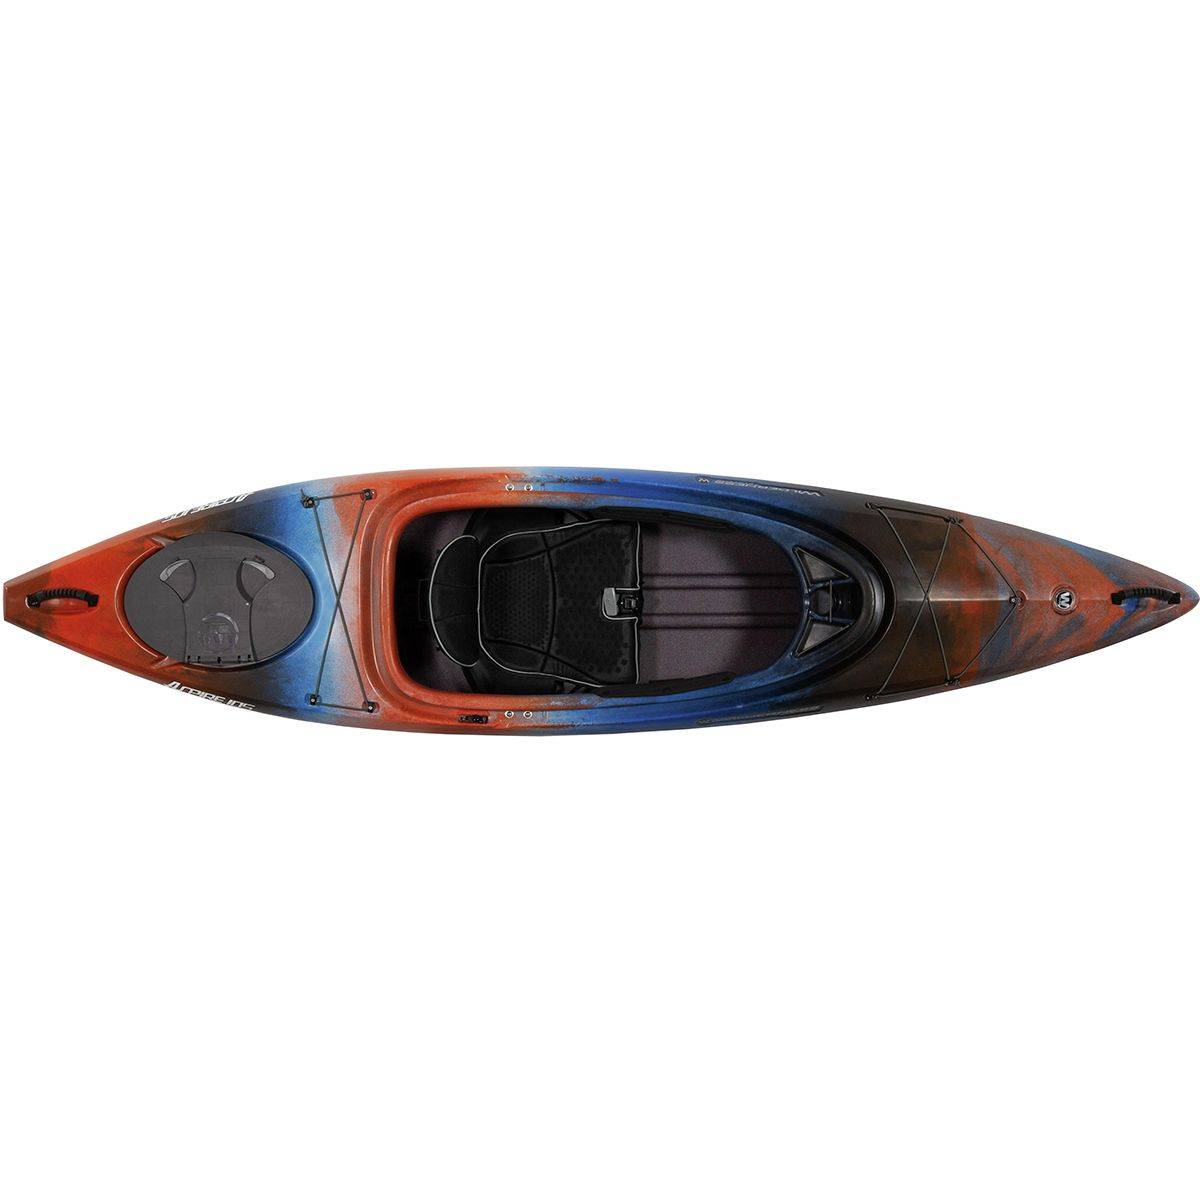 Wilderness Systems Aspire 105